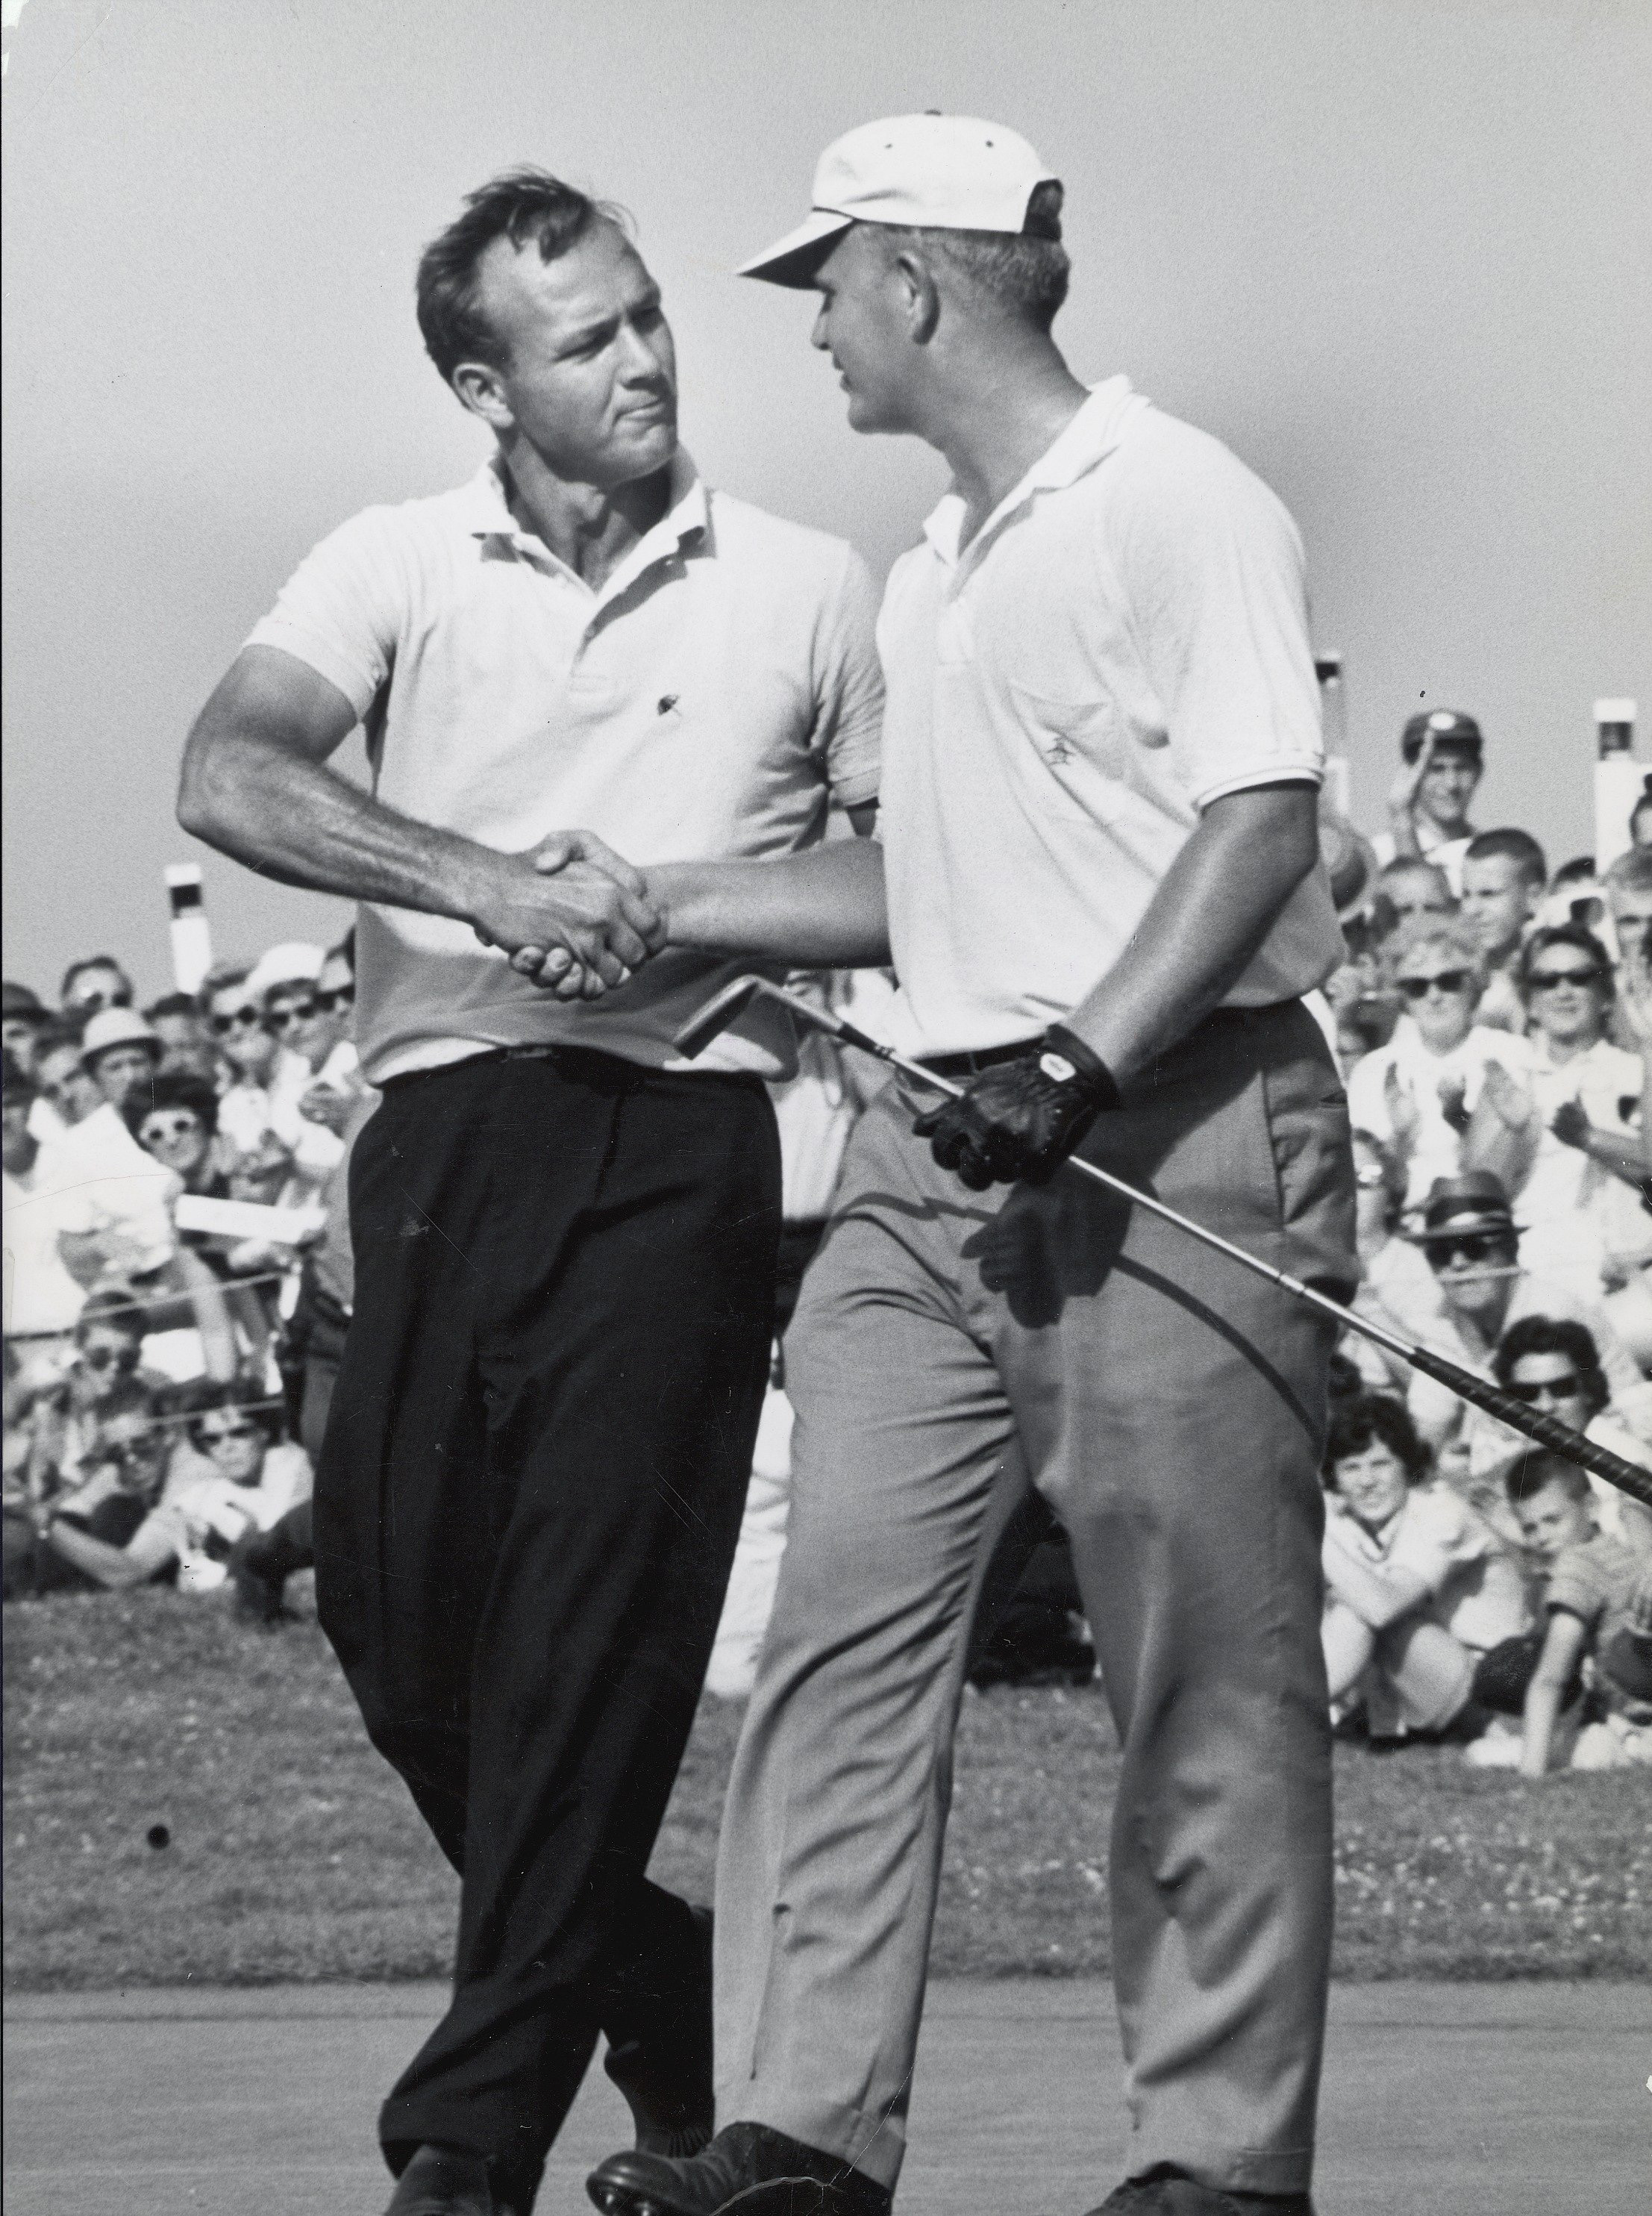 Arnold Palmer congratulates Jack Nicklaus after the 1962 U.S. Open at Oakmont in Pittsburgh.